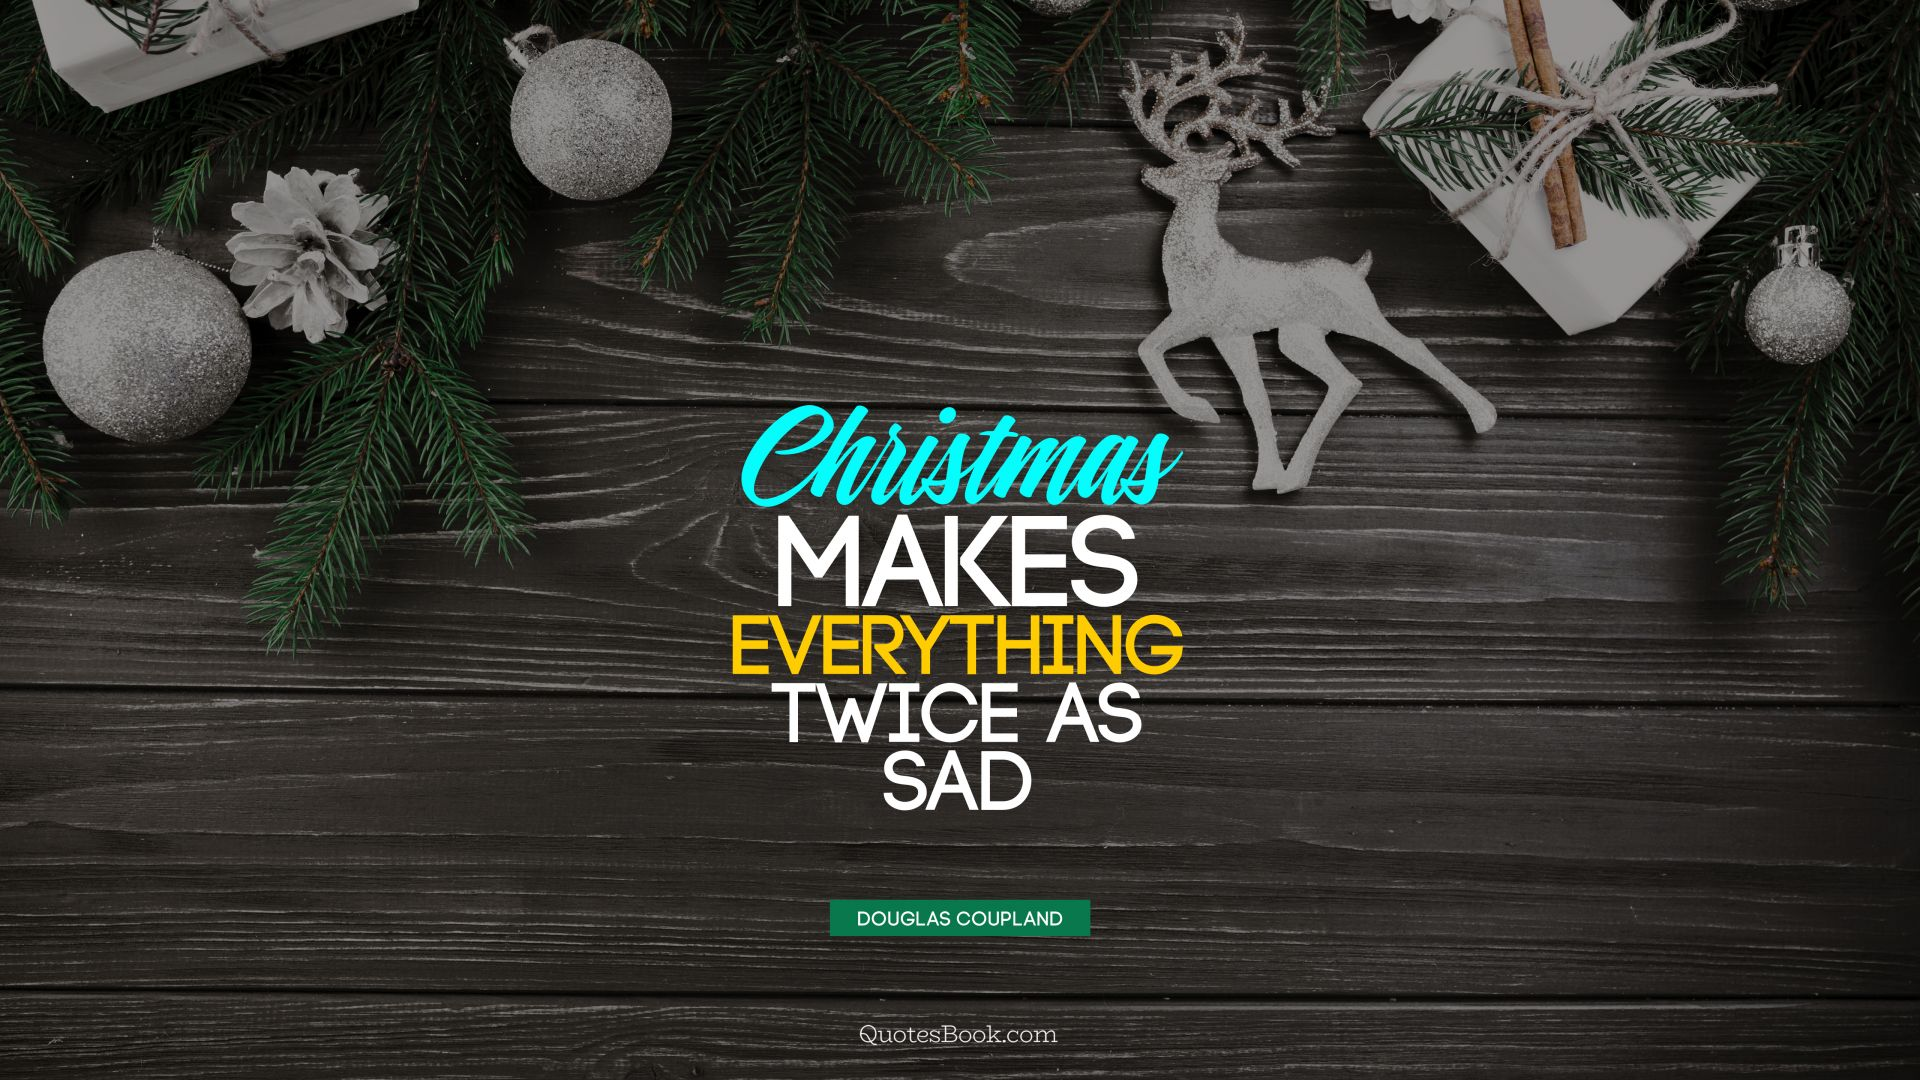 Christmas makes everything twice as sad. - Quote by Douglas Coupland